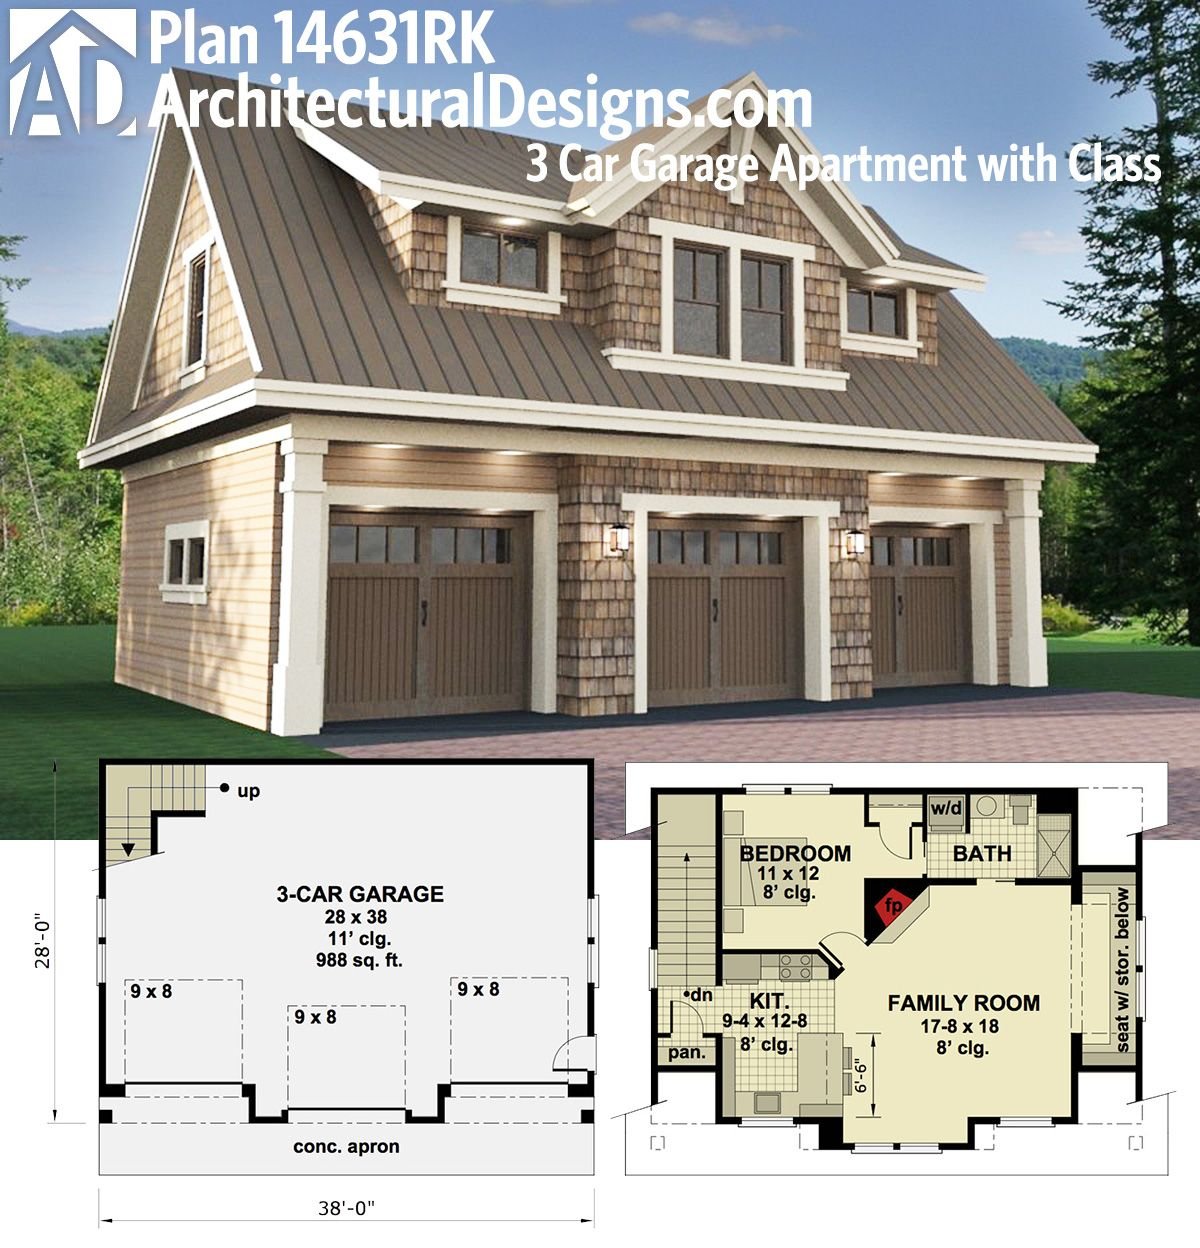 Plan 14631rk 3 car garage apartment with class carriage for Carriage barn plans